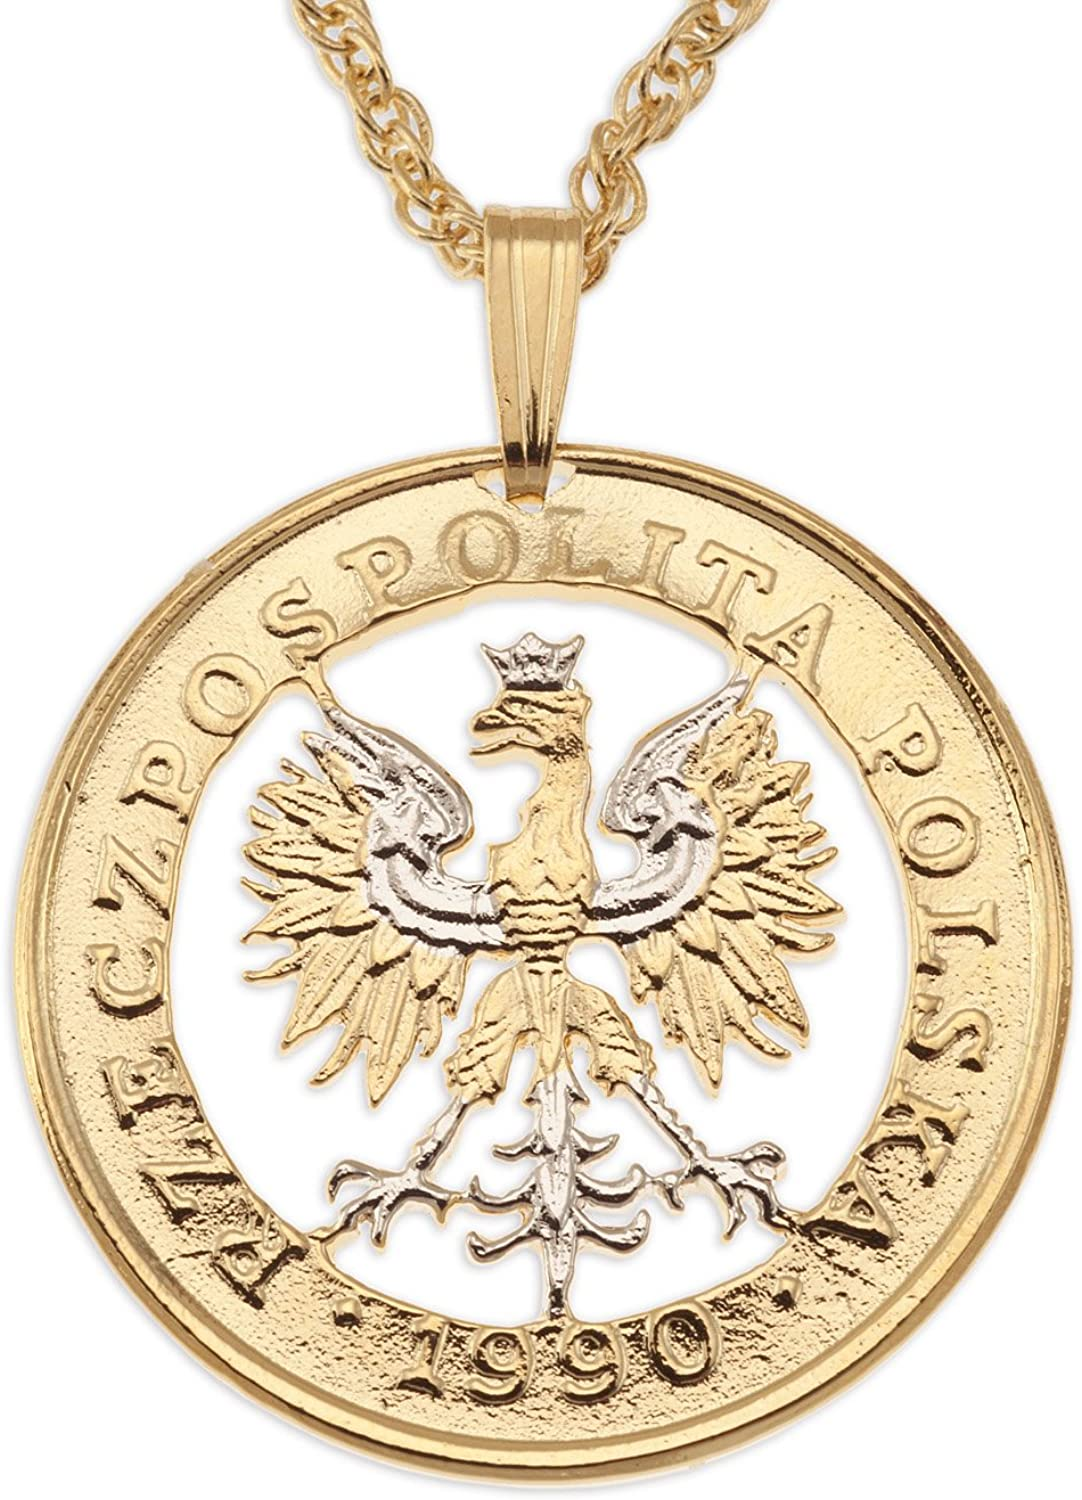 The Difference World Coin Jewelry Poland Eagle Pendant & Necklace, Poland 100 Zlotych Hand Cut